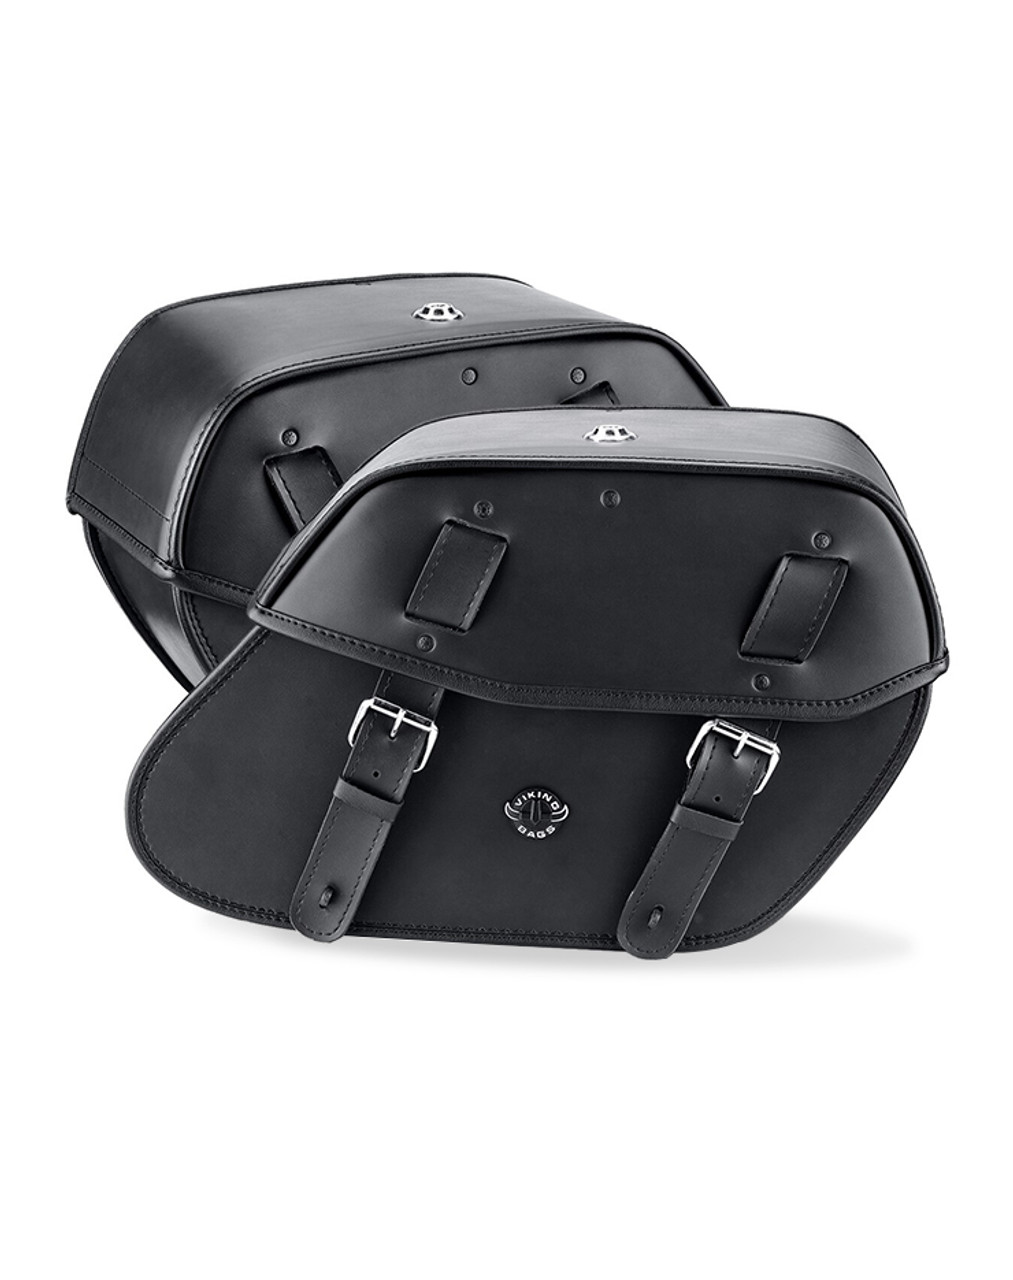 Indian Chief Classic Viking Odin Large Motorcycle Saddlebags Both Bags View